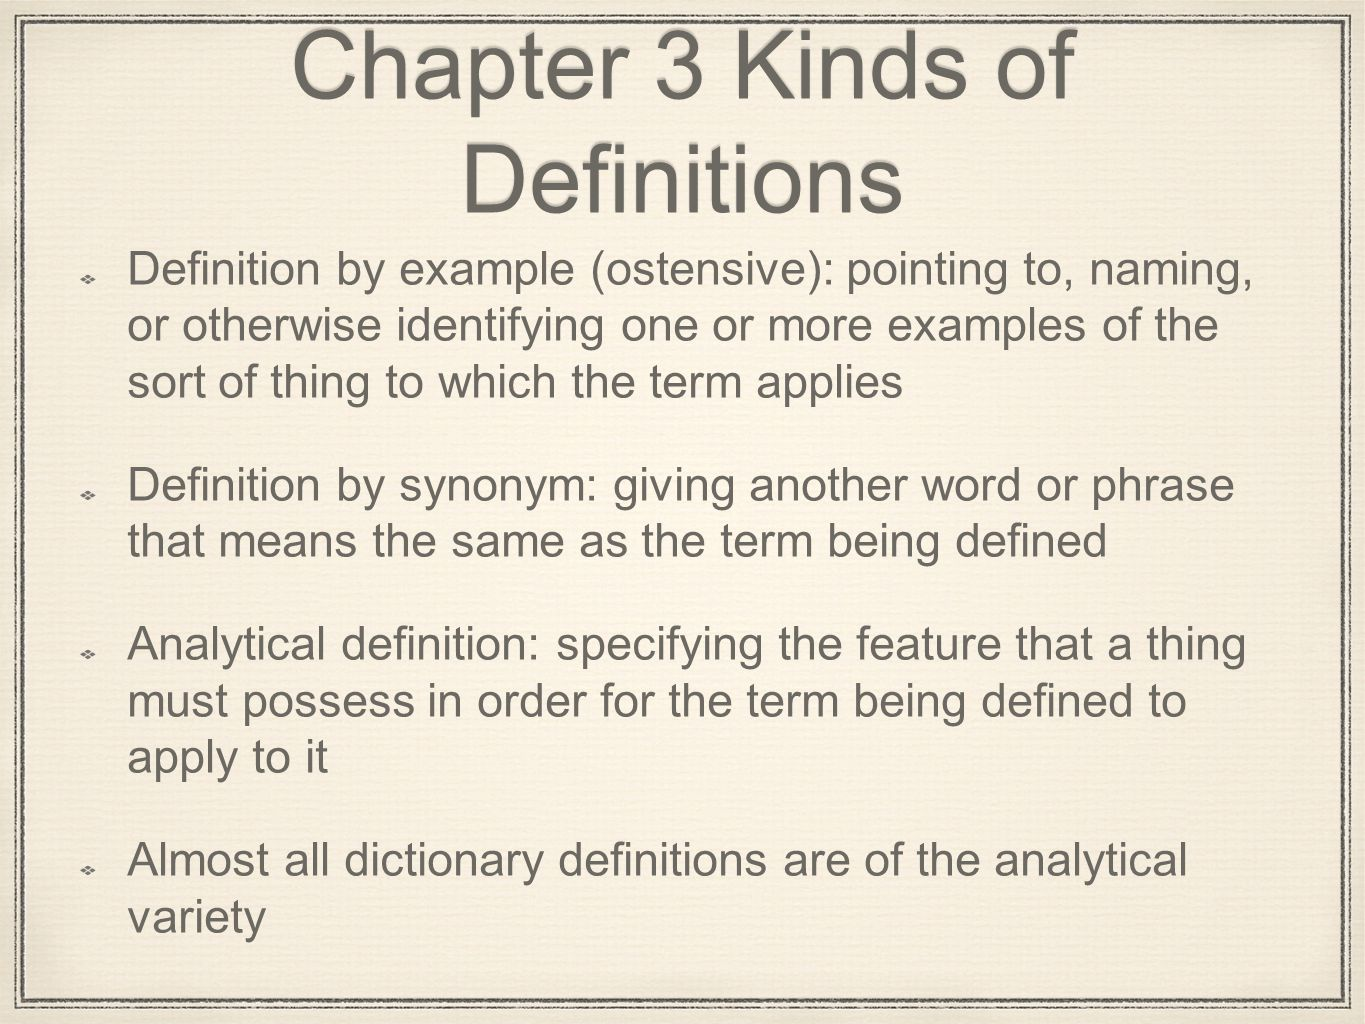 Chapter 3 Kinds of Definitions Definition by example (ostensive): pointing to, naming, or otherwise identifying one or more examples of the sort of thing to which the term applies Definition by synonym: giving another word or phrase that means the same as the term being defined Analytical definition: specifying the feature that a thing must possess in order for the term being defined to apply to it Almost all dictionary definitions are of the analytical variety